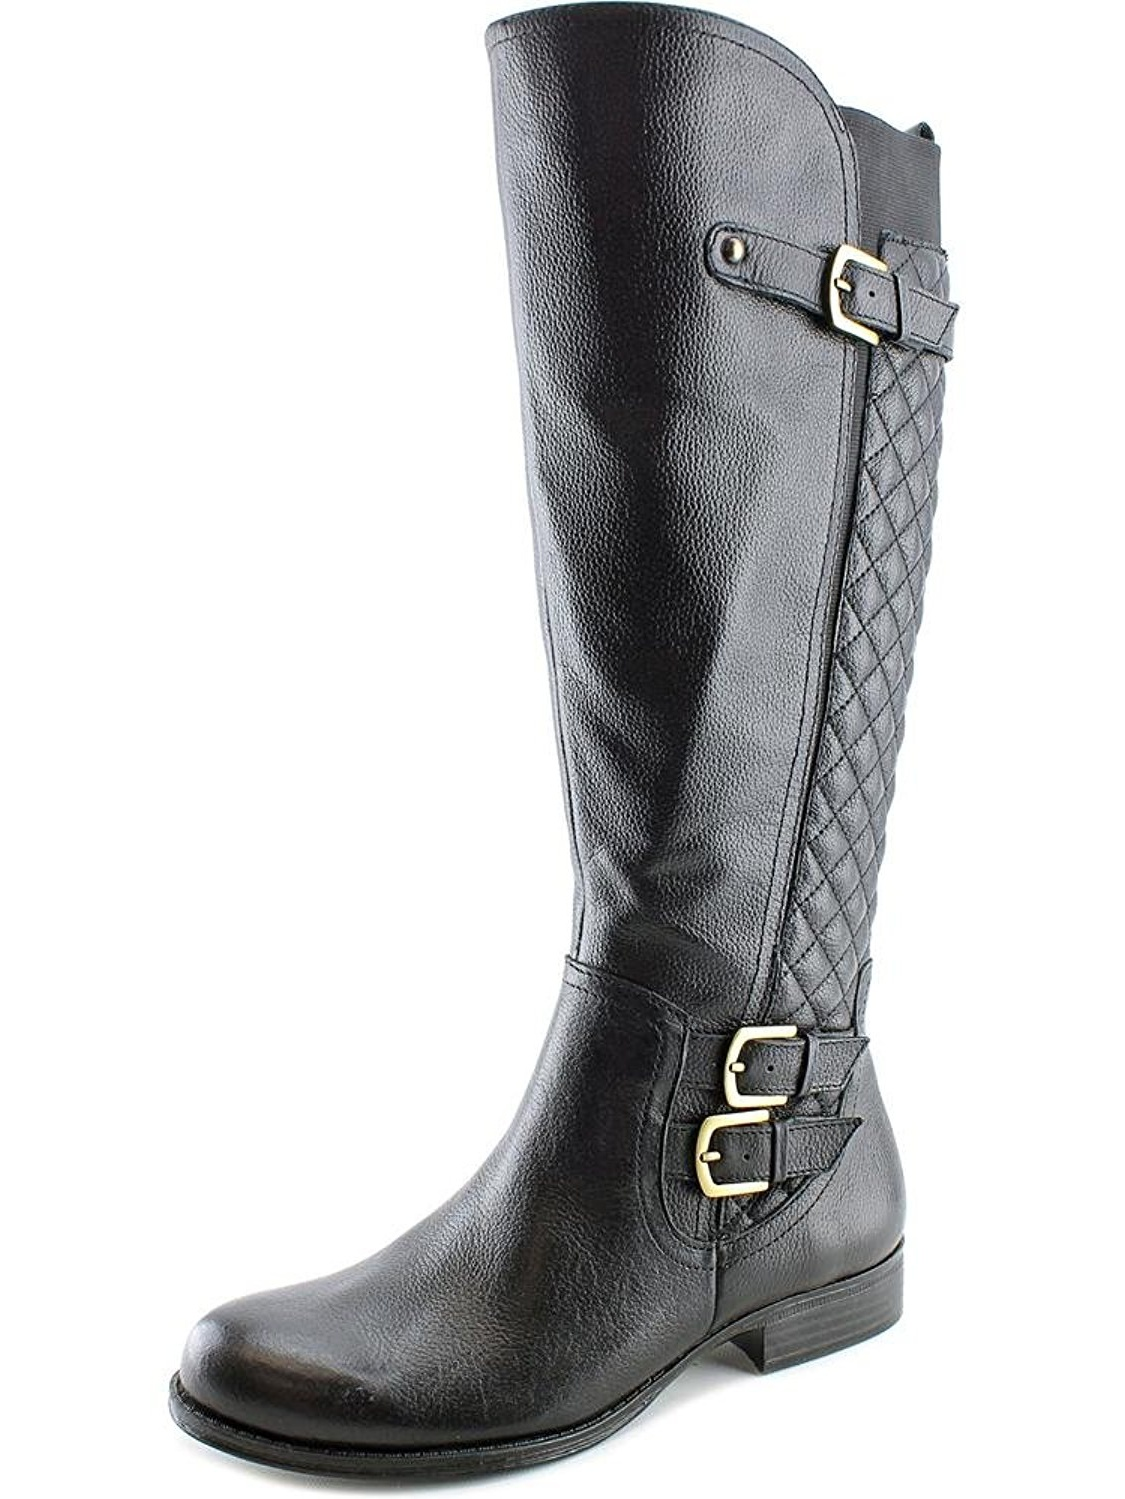 Naturalizer Womens Jamon Closed Toe Knee High Fashion Boots by Naturalizer